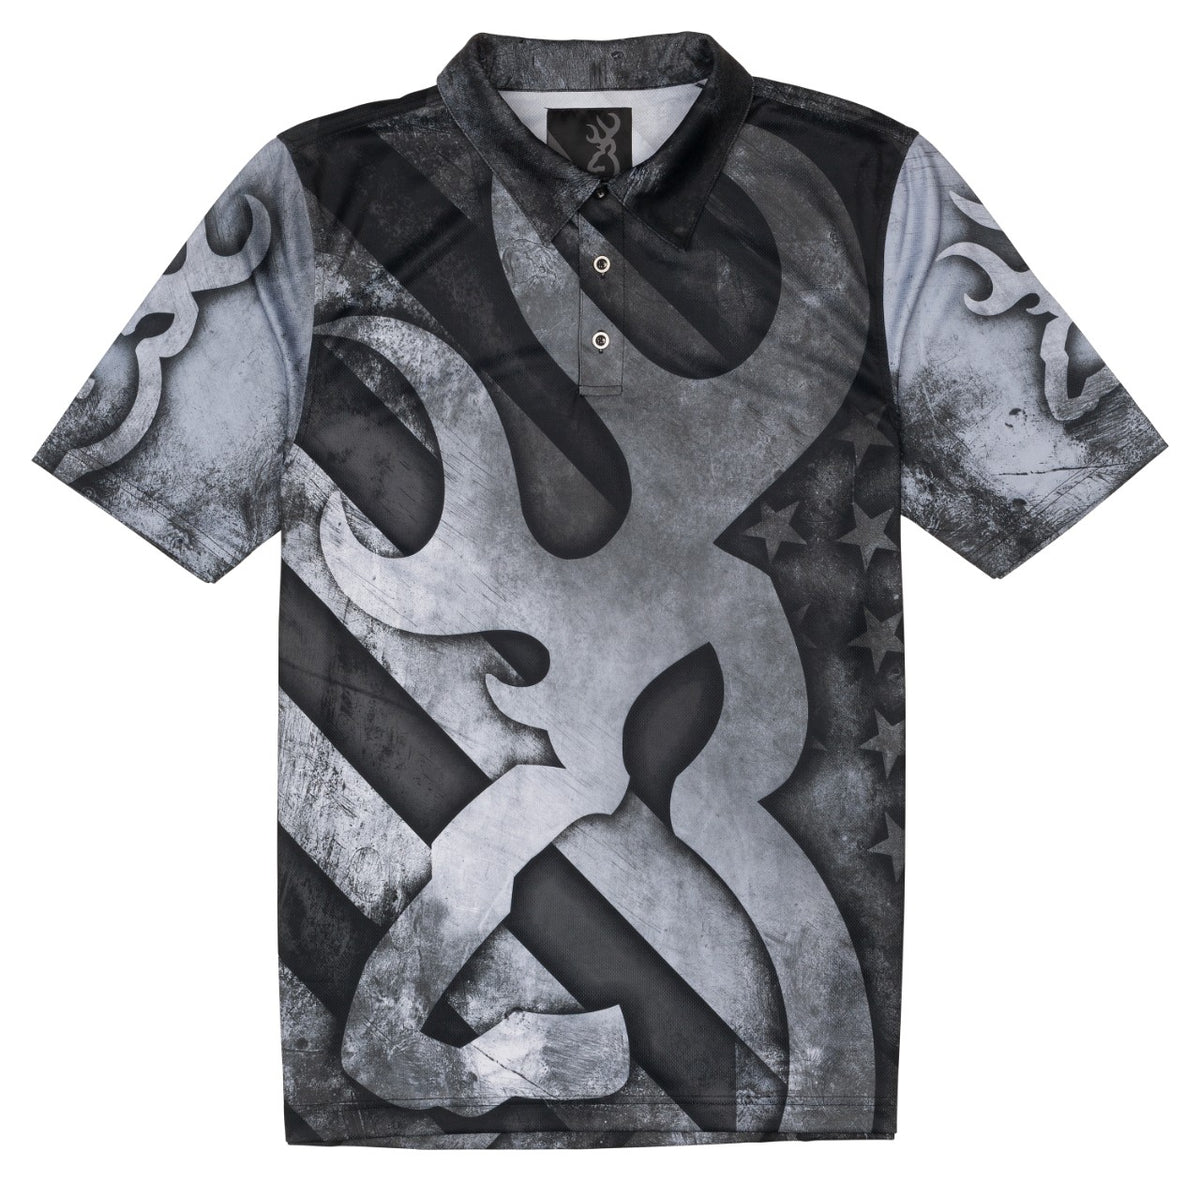 SHT,BROWNING TEAM,BLACK/WHITE,XL